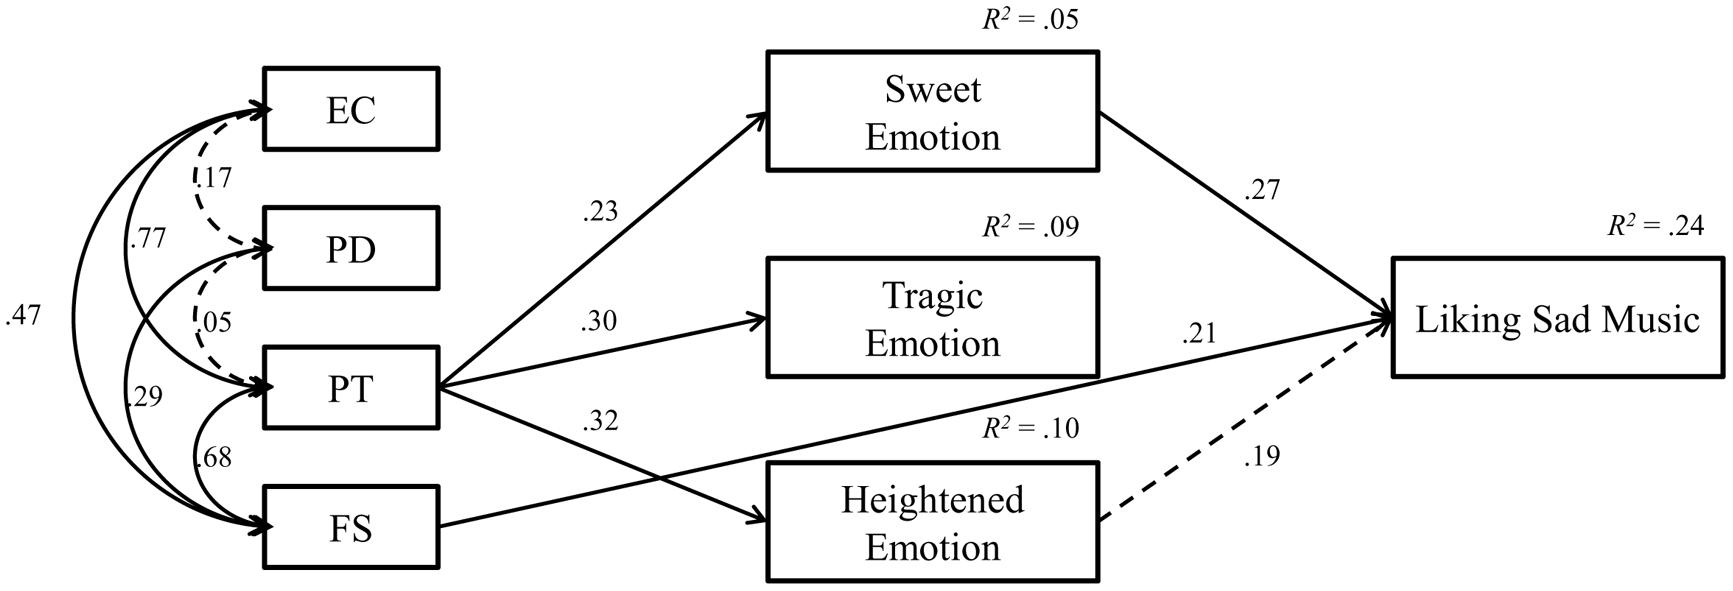 Frontiers | Influence of trait empathy on the emotion evoked by sad